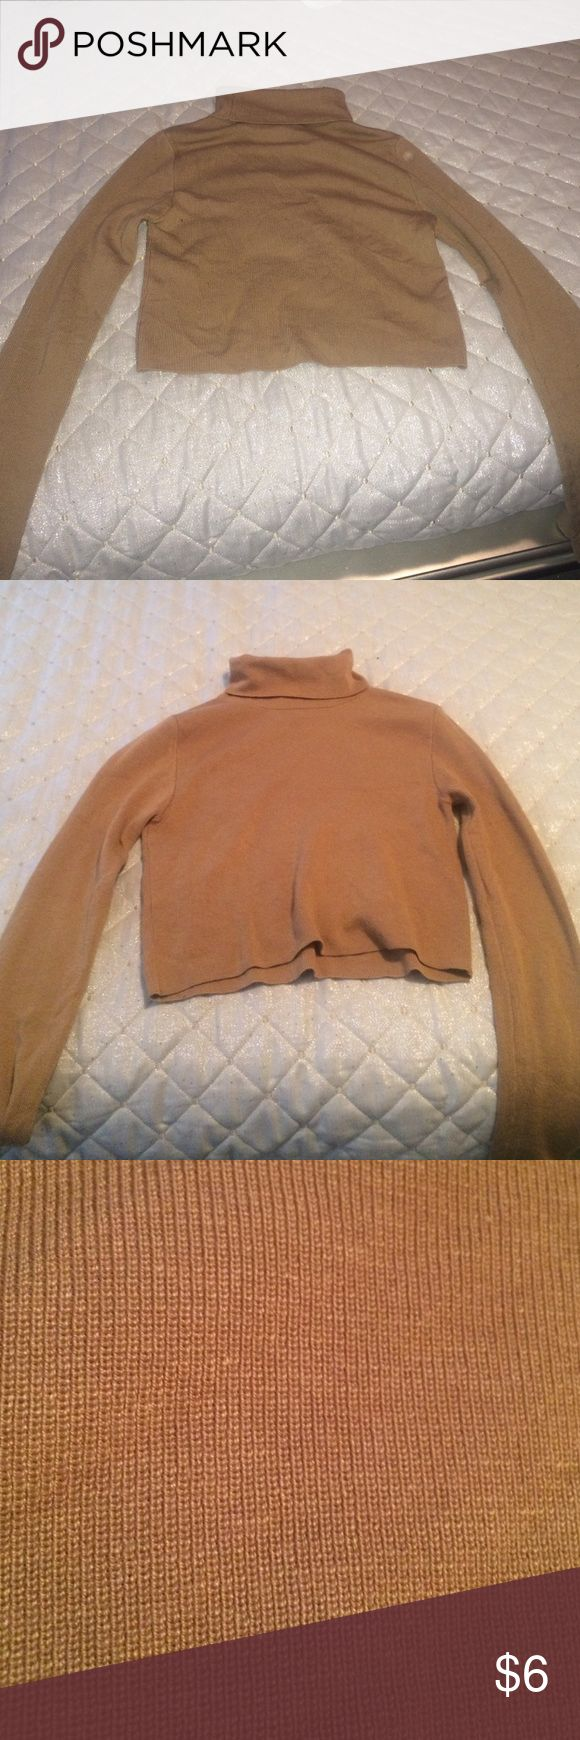 Camel cropped turtle neck Ribbed material cropped turtle neck sweater size medium Forever 21 Tops Crop Tops